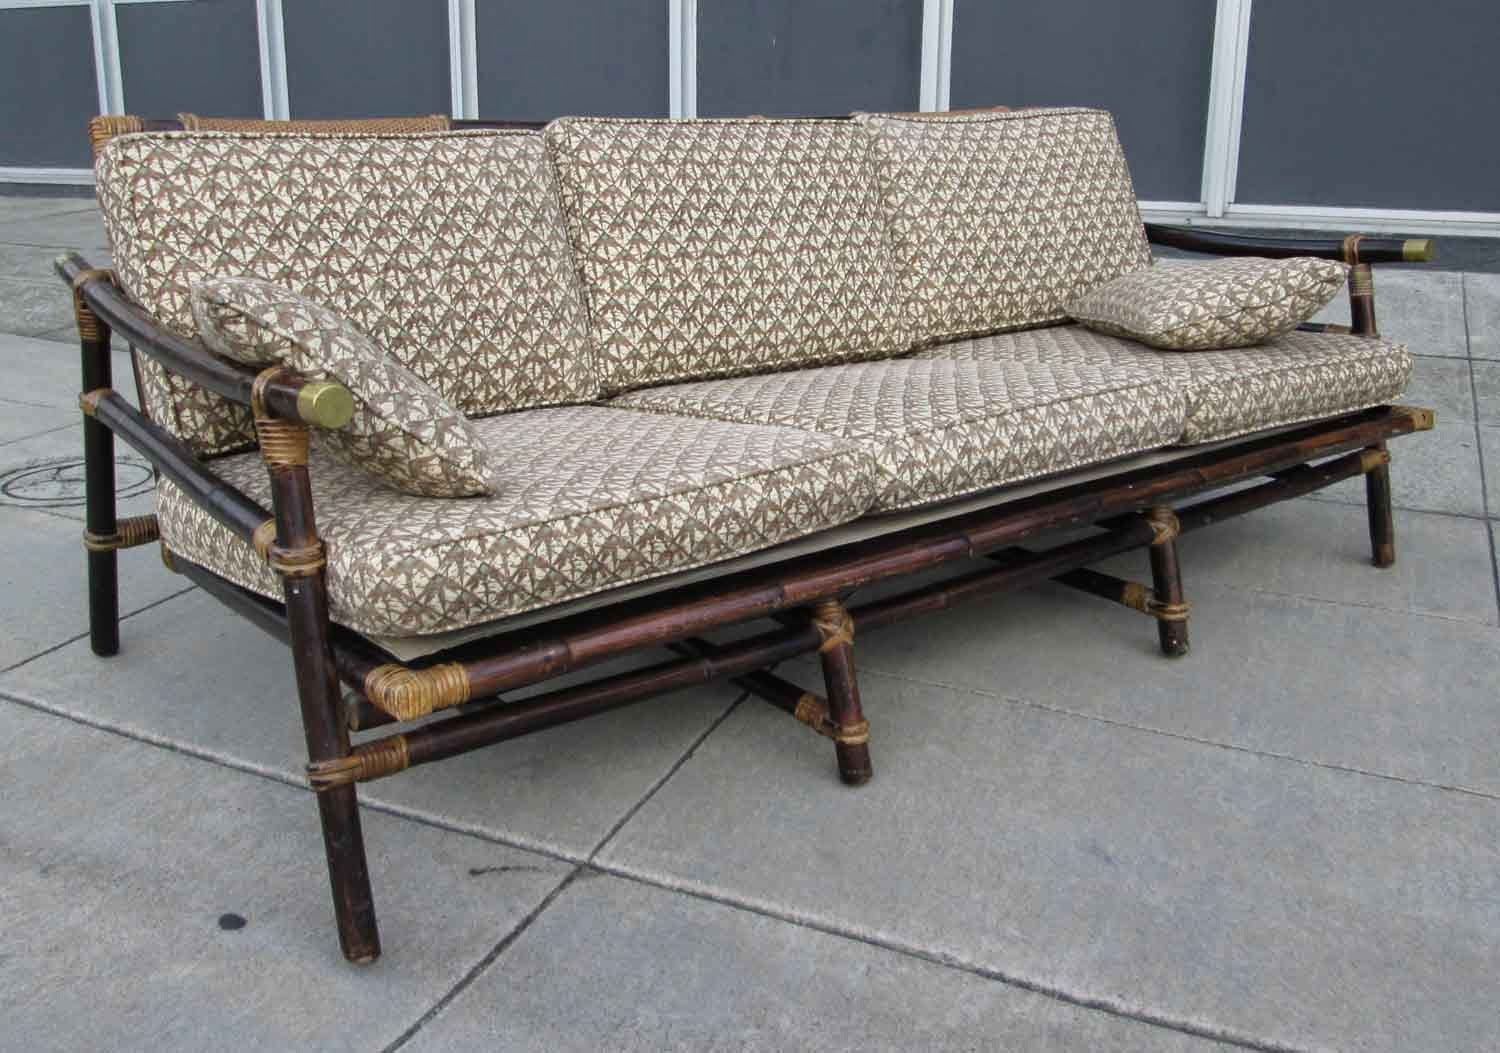 long sofa rattan reeds furniture with pattern cushion